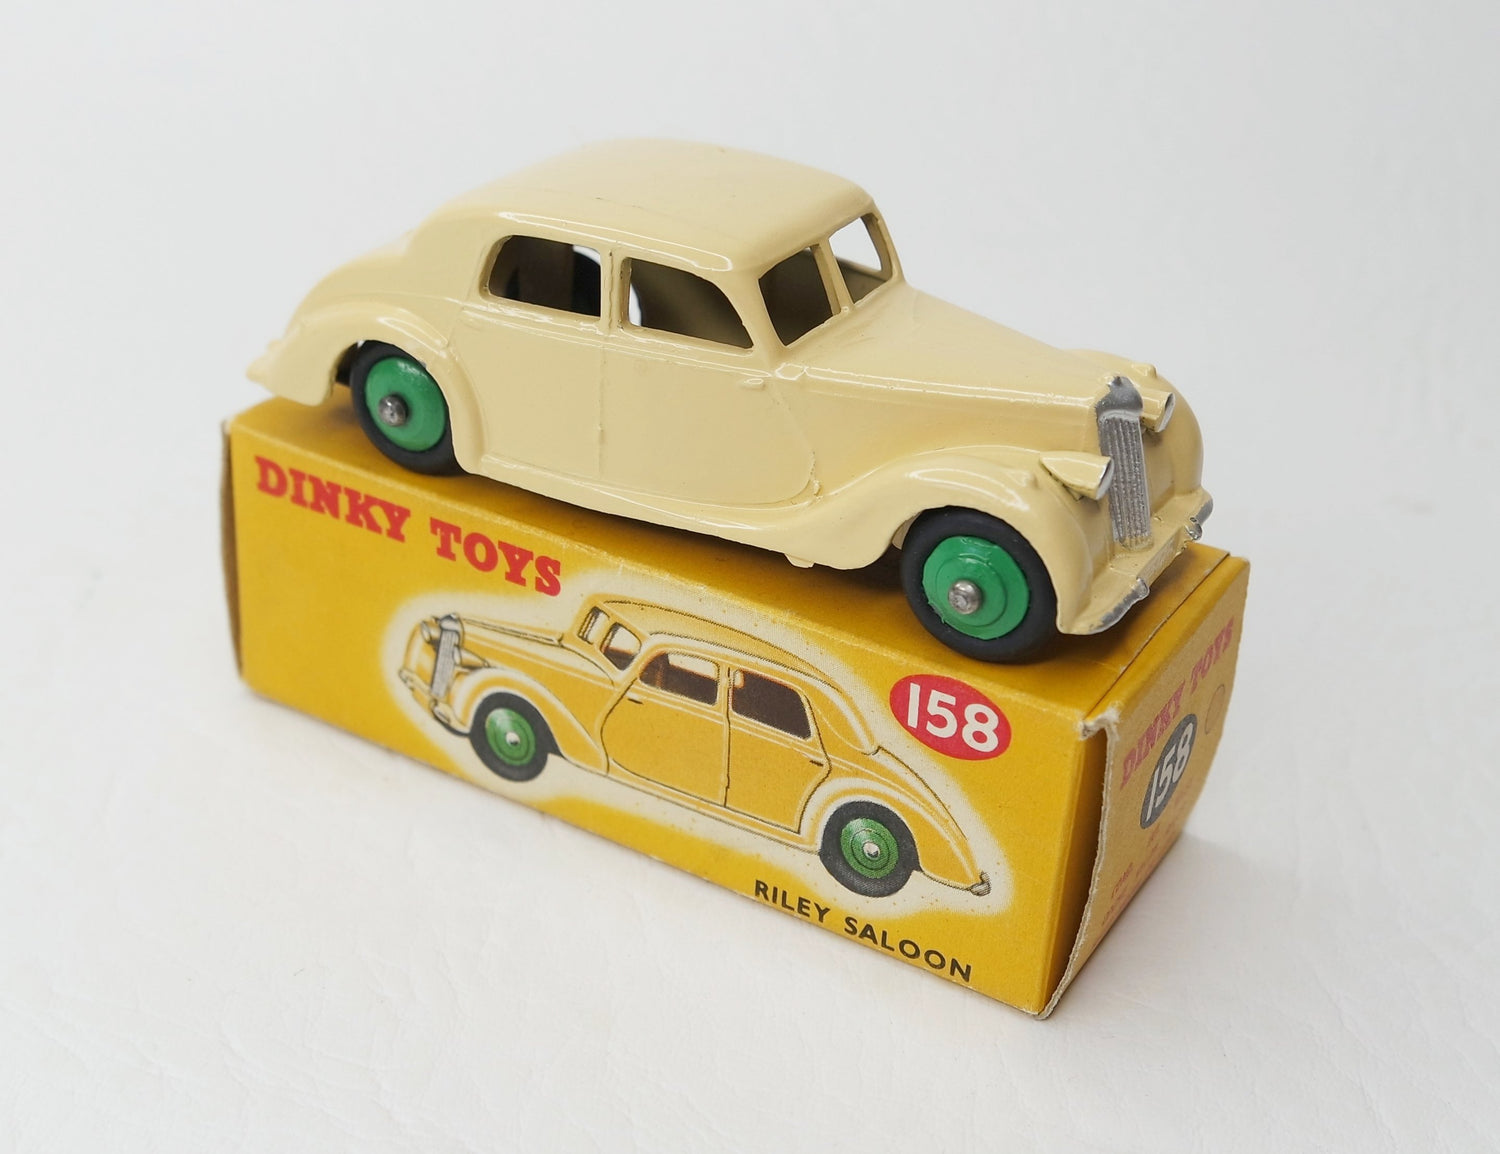 Dinky Toys 158 Riley Saloon Virtually Mint/Boxed (C.C).